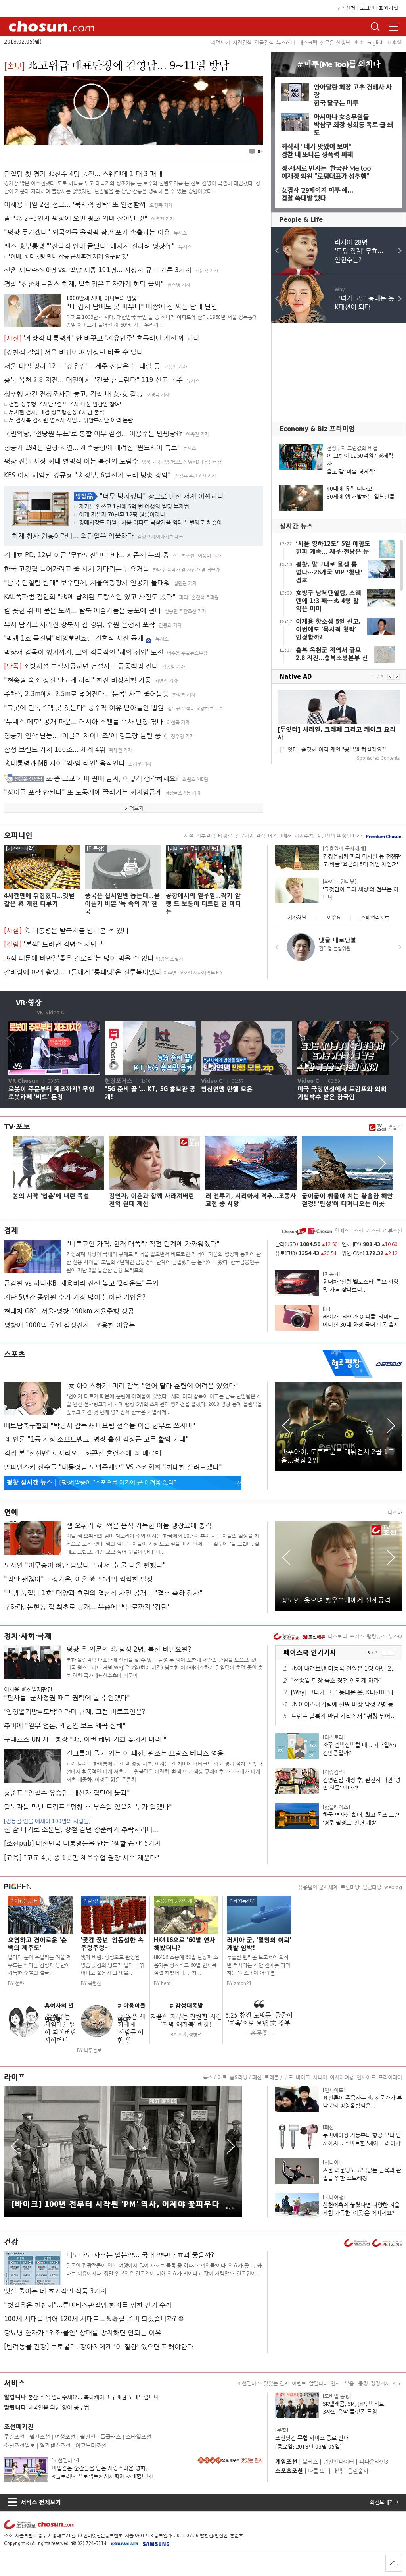 chosun.com at Sunday Feb. 4, 2018, 3:03 p.m. UTC